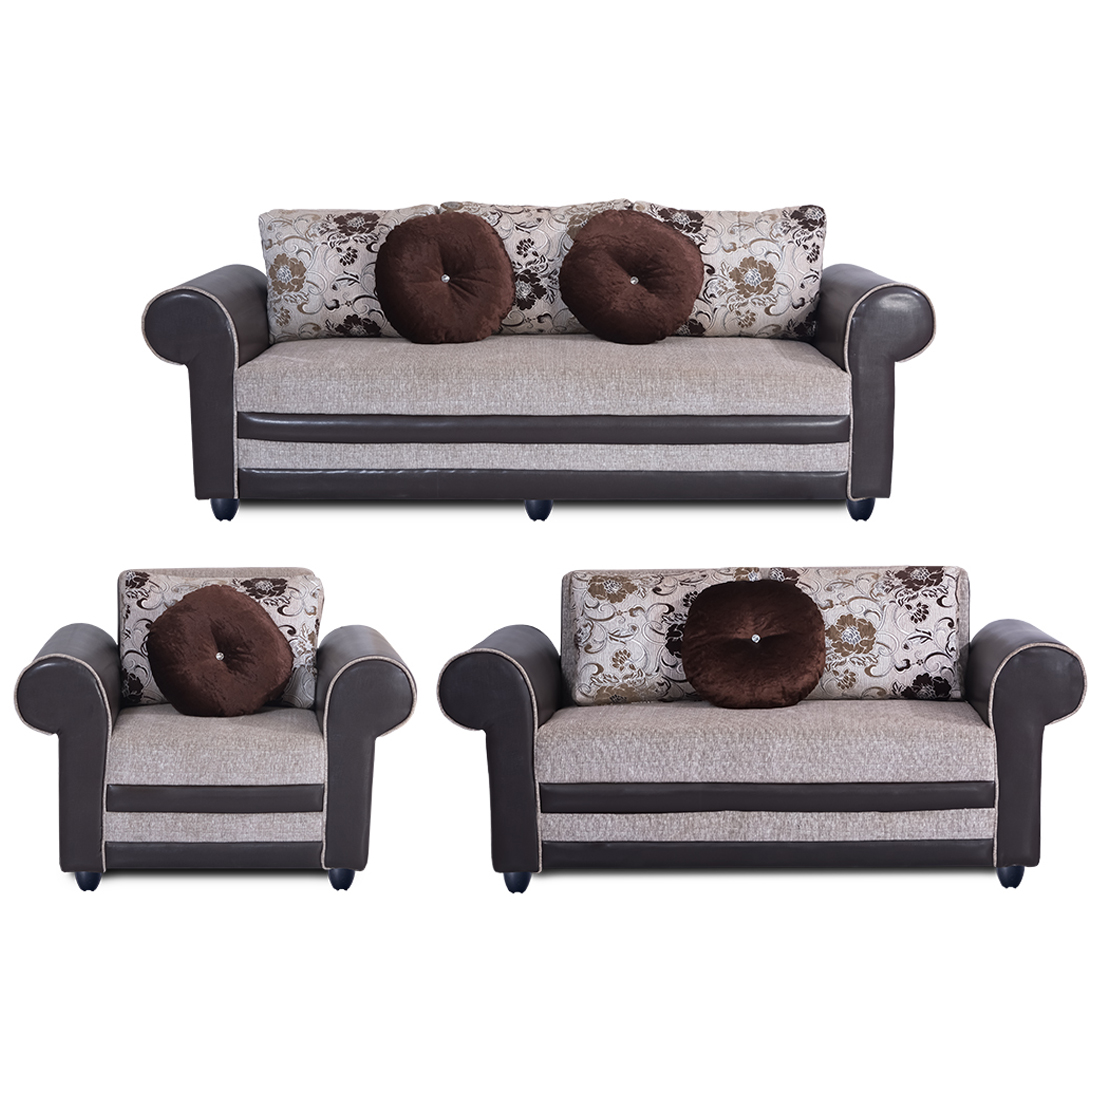 Incredible Bharat Lifestyle Alex Fabric Cream Brown Sofa Set 3 2 1 Cjindustries Chair Design For Home Cjindustriesco